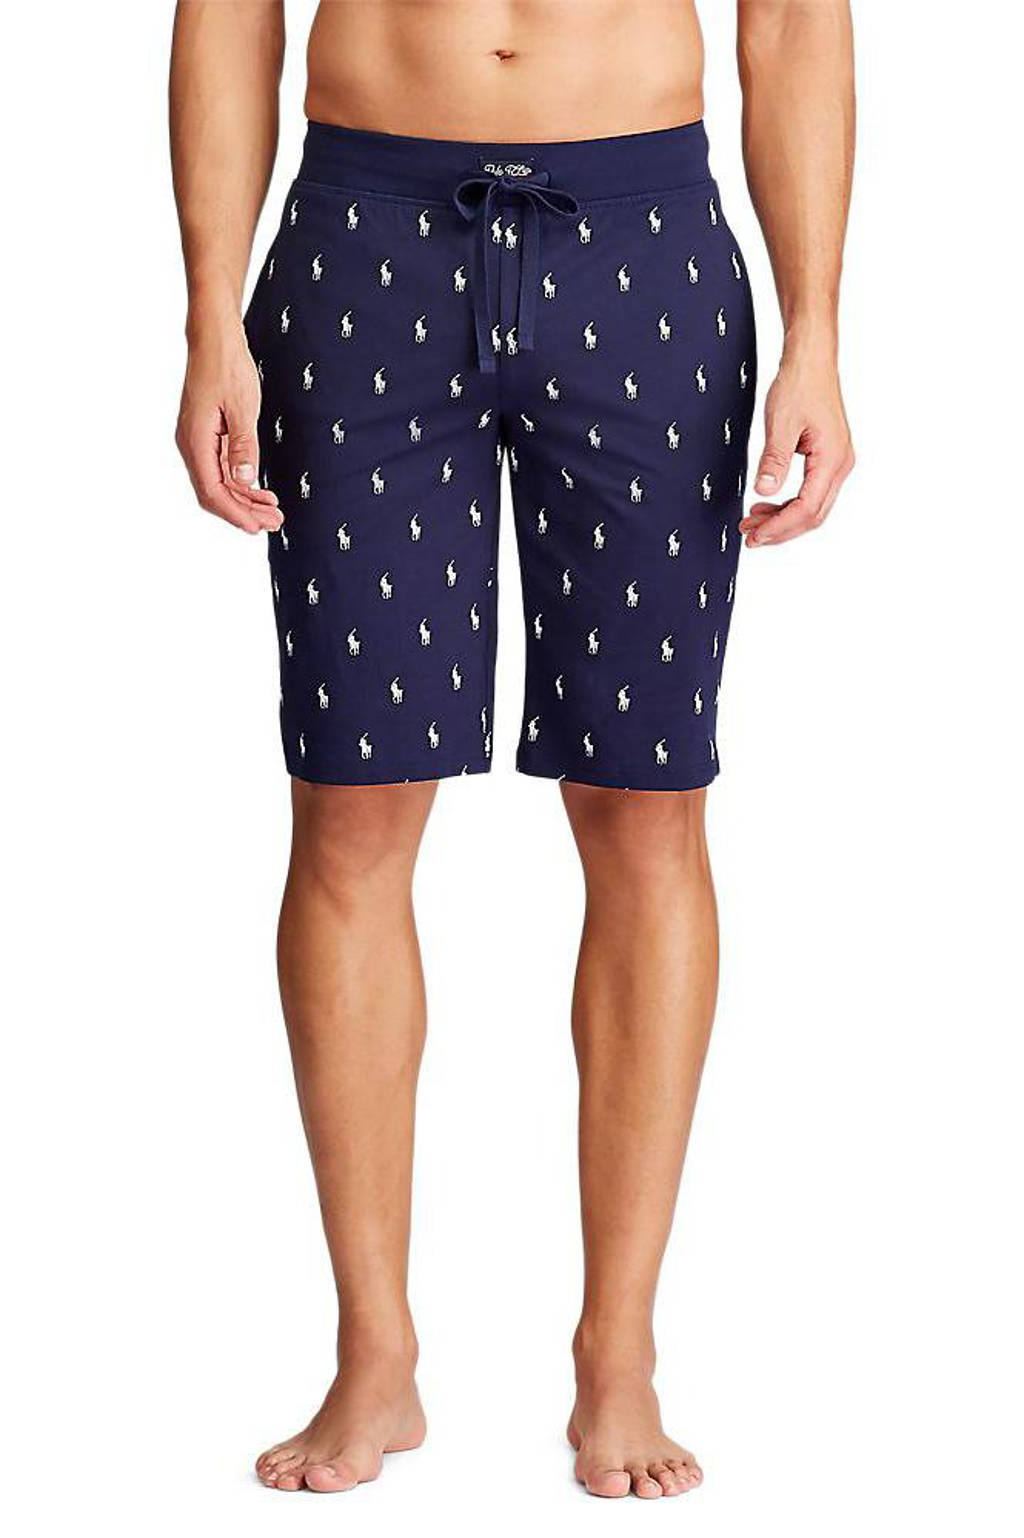 POLO Ralph Lauren pyjamabroek met all over print donkerblauw, Donkerblauw